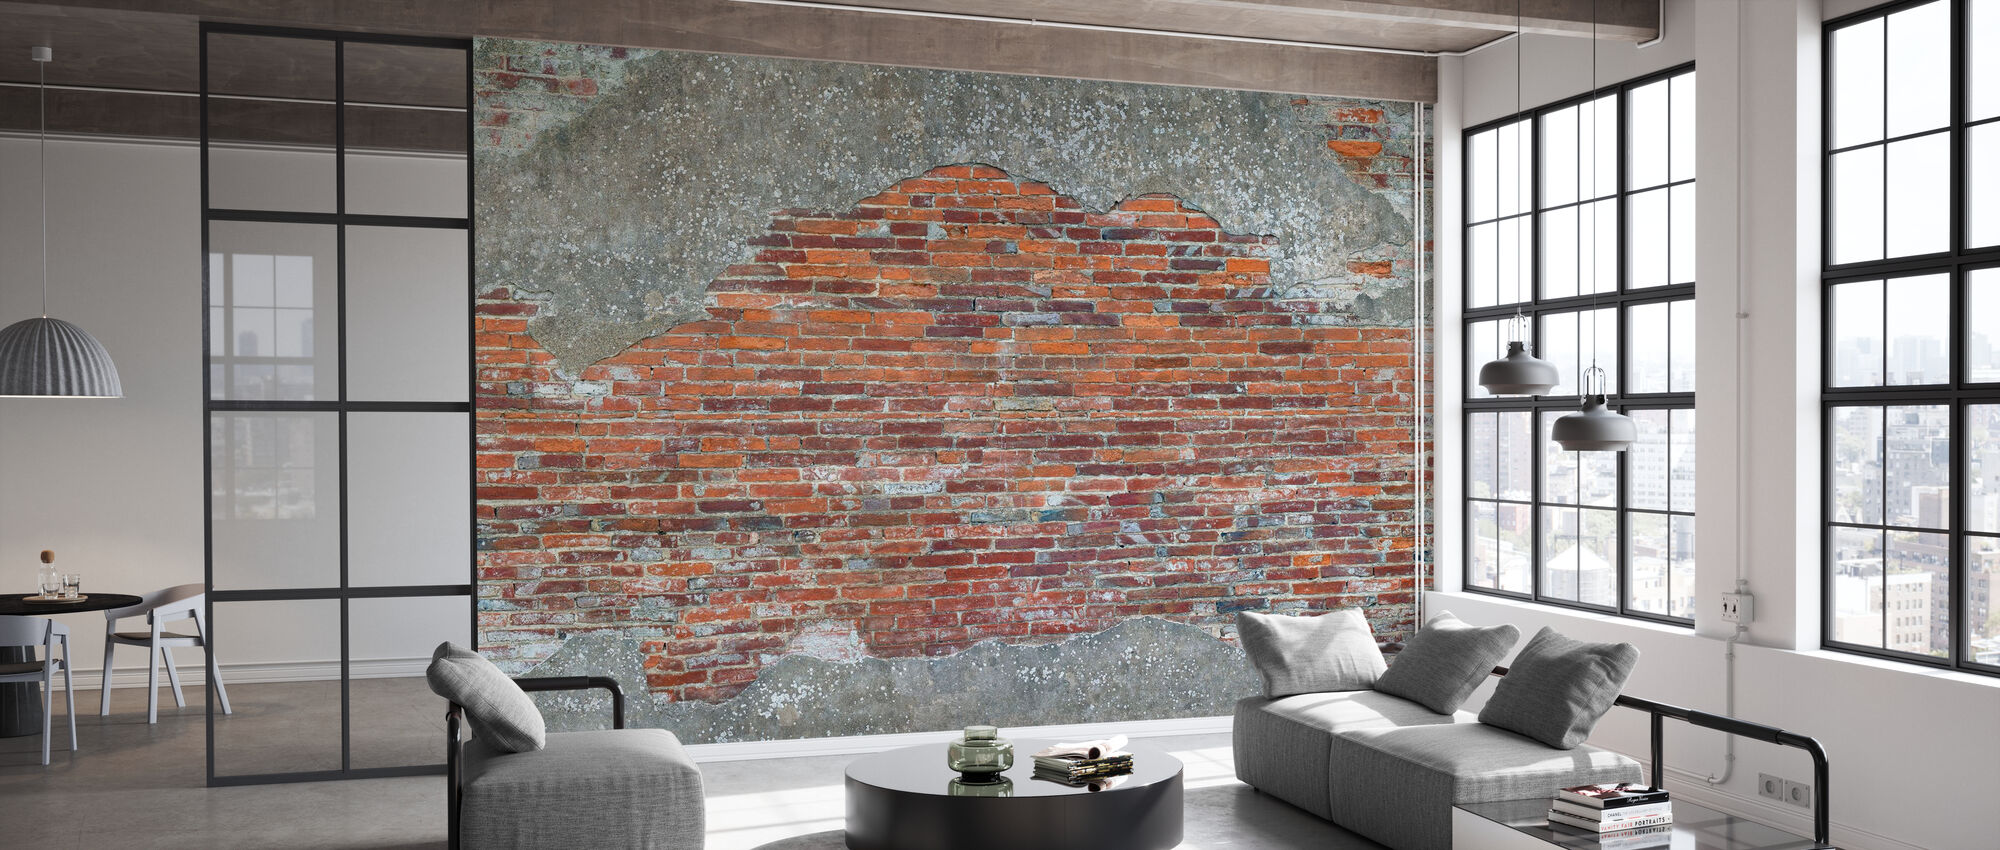 Old Roman Brick Wall - Wallpaper - Office